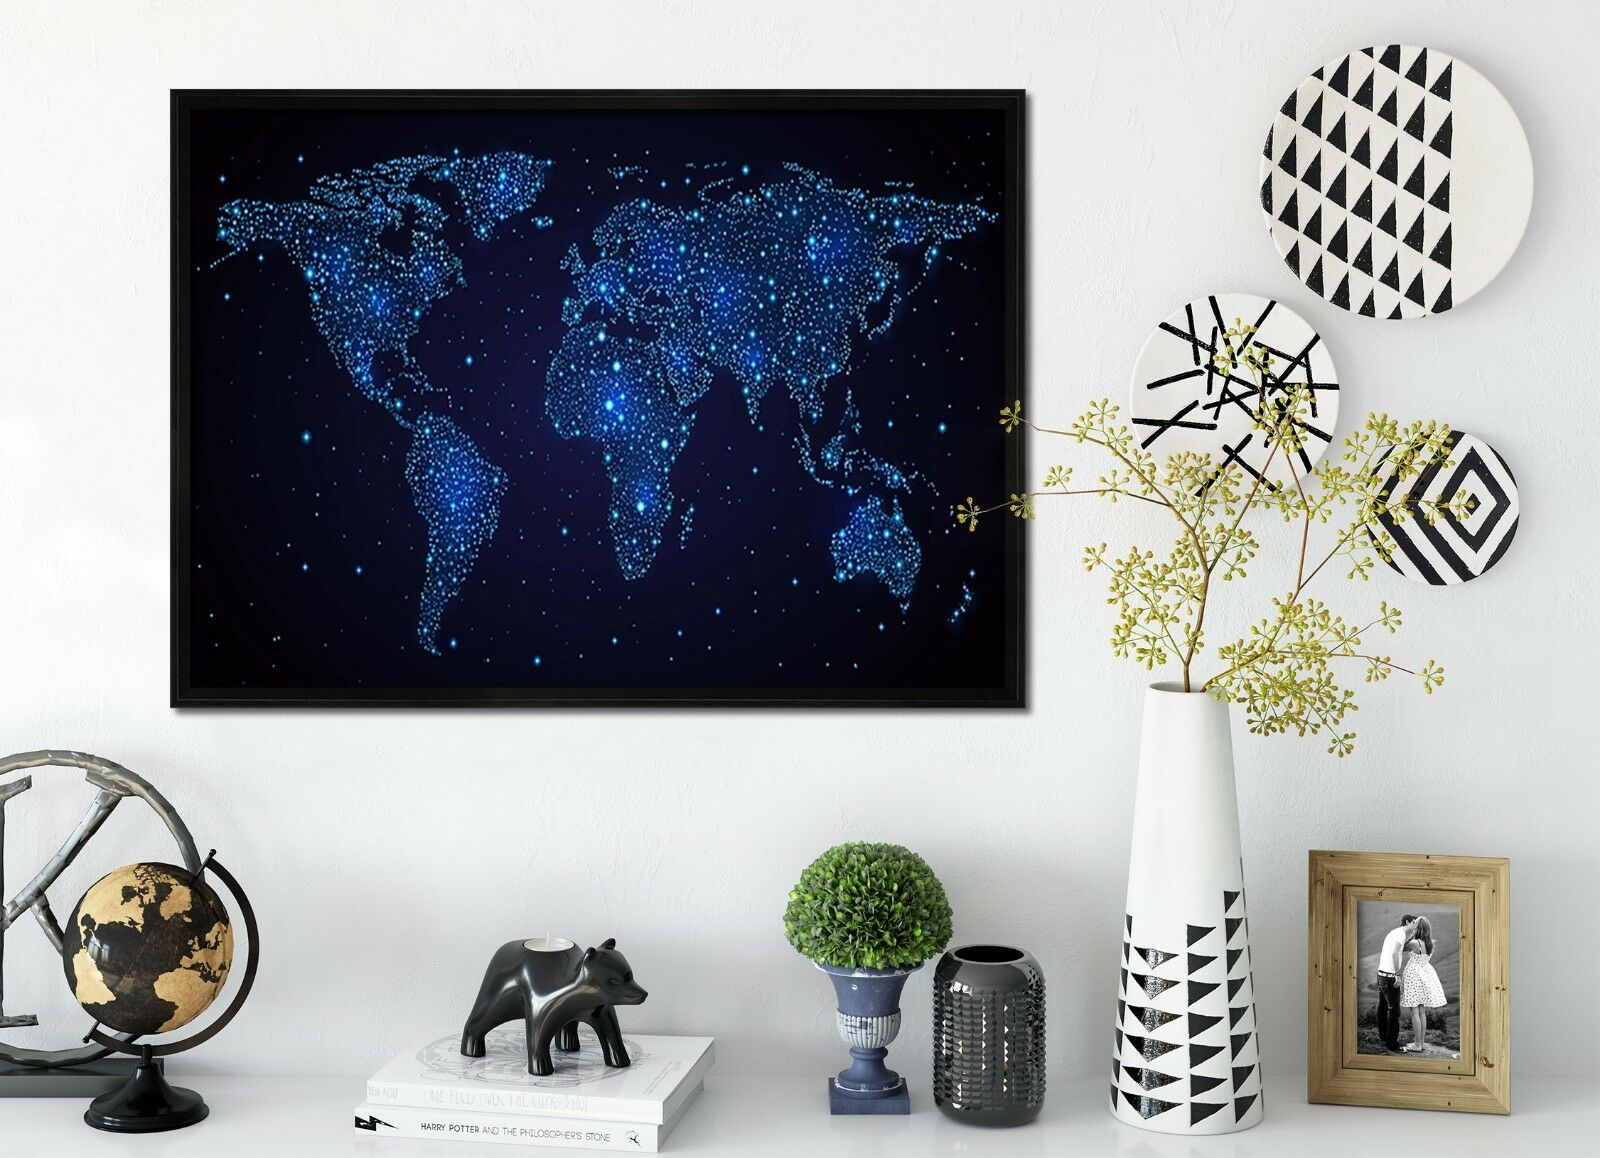 3D Starry World Map 2 Framed Poster Home Decor Print Painting Art AJ WALLPAPER